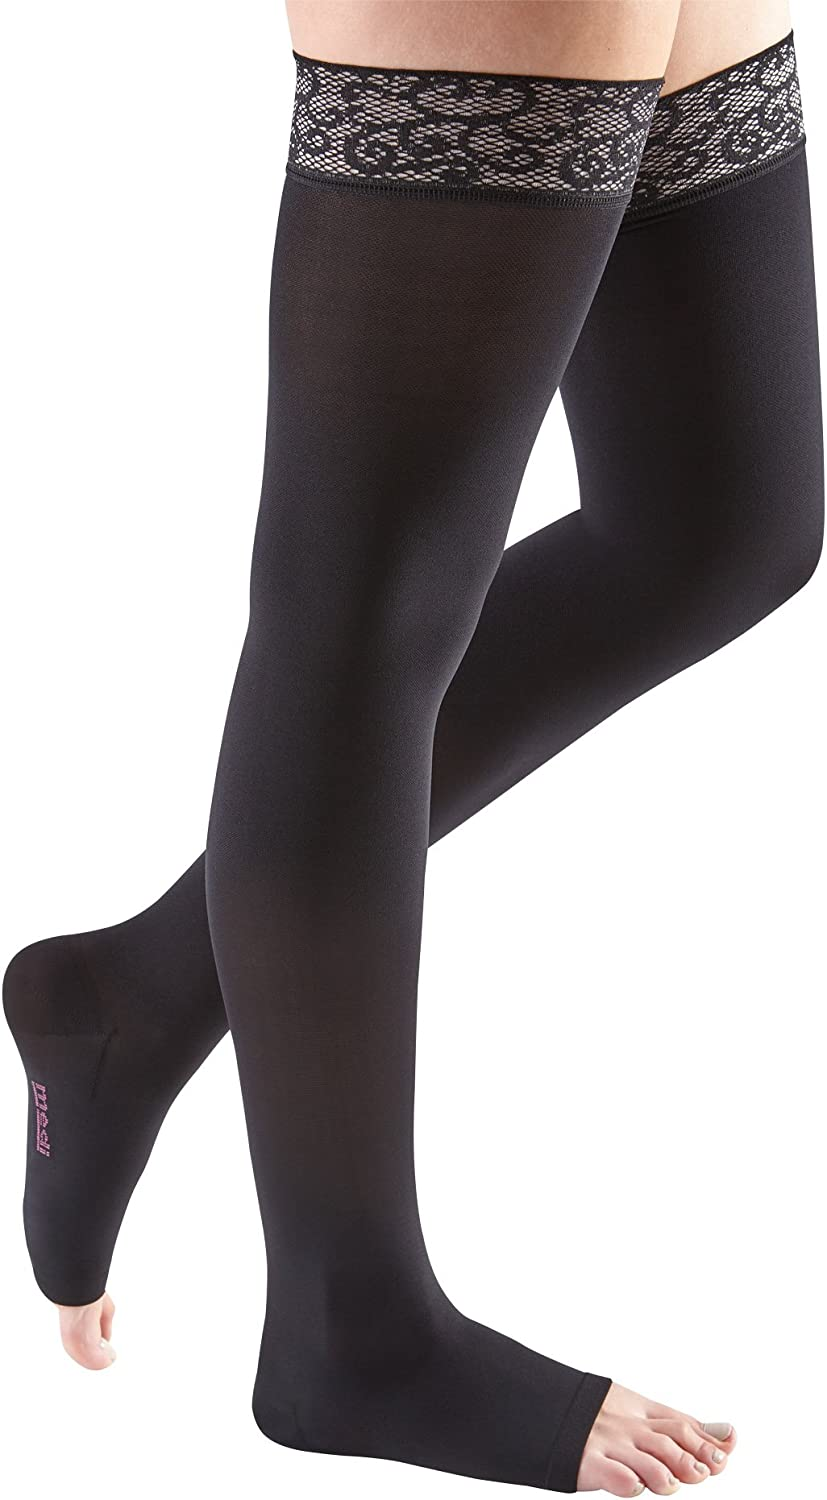 Now free shipping mediven Comfort for Women 20-30 mmHg w Stockings La Thigh High online shop